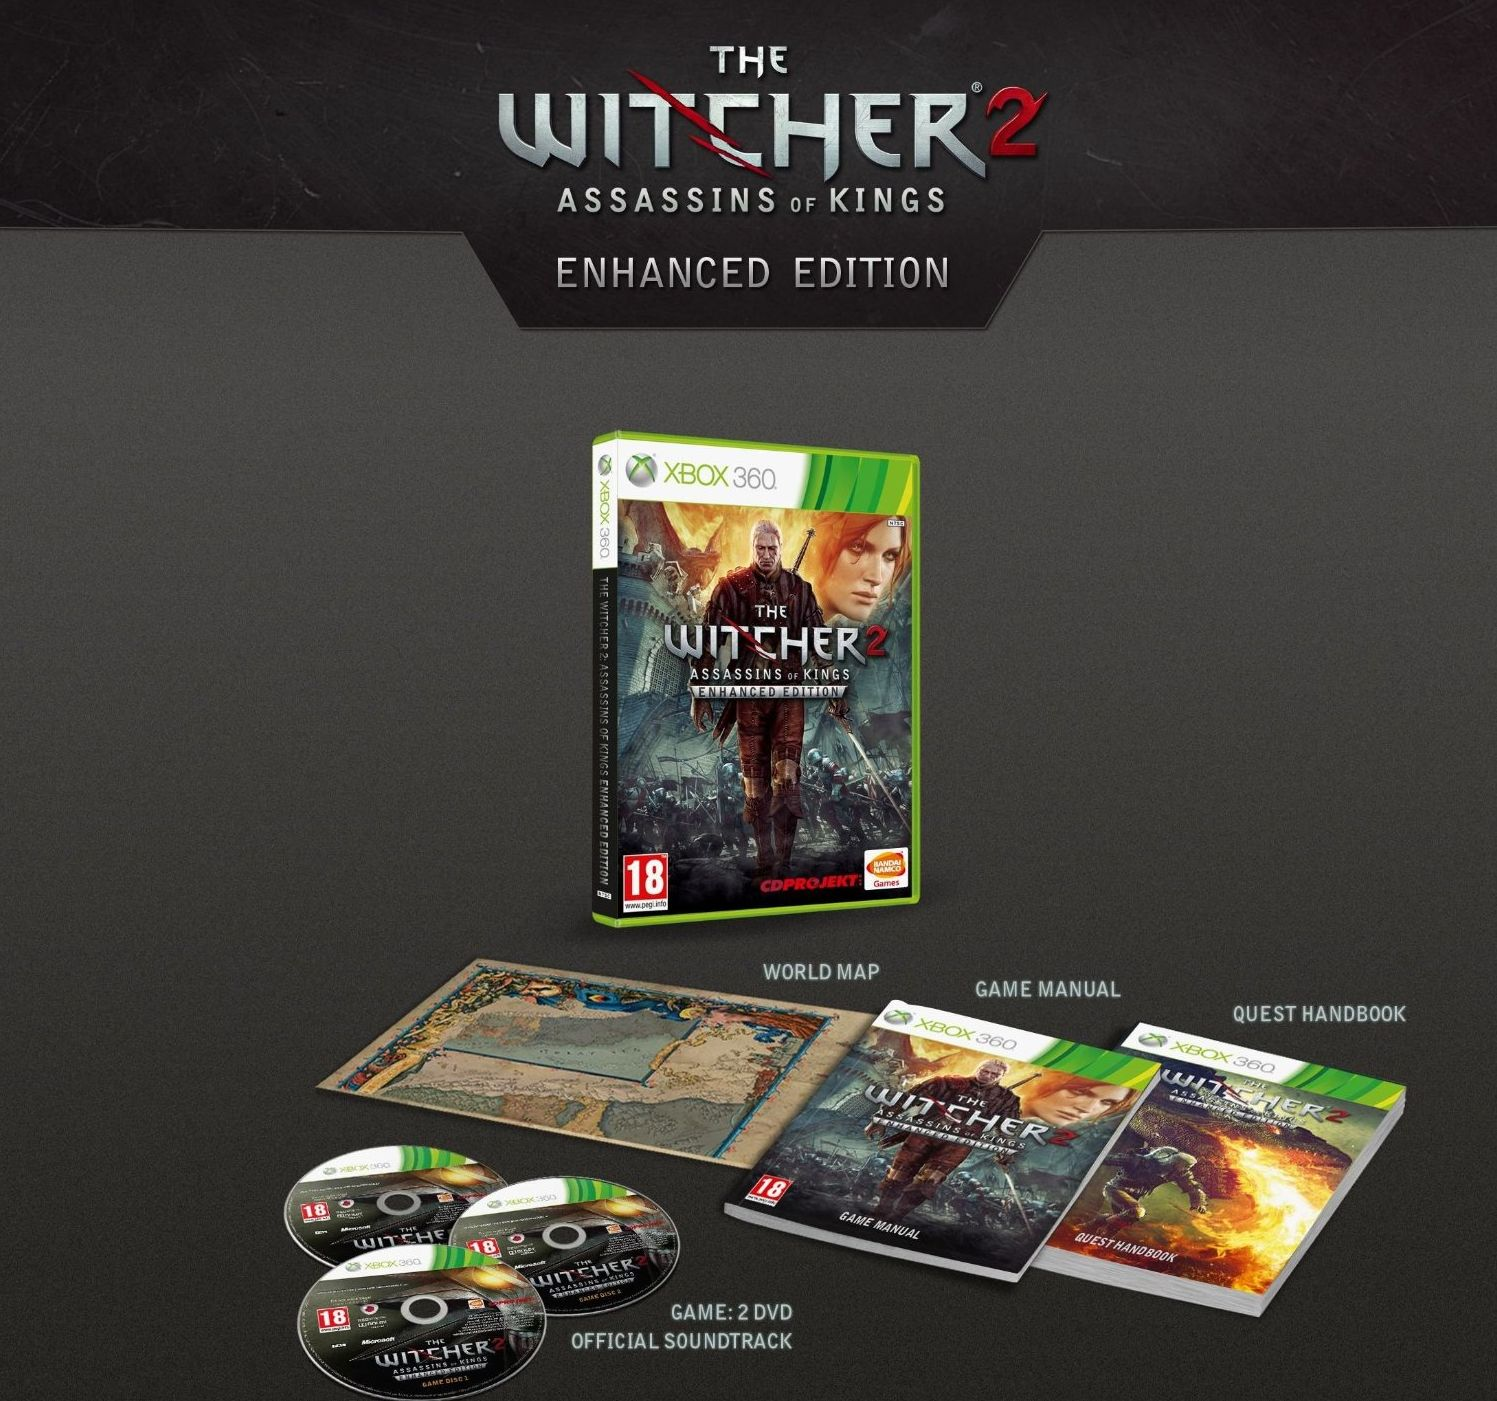 The witcher 2: assassins of kings dark edition.